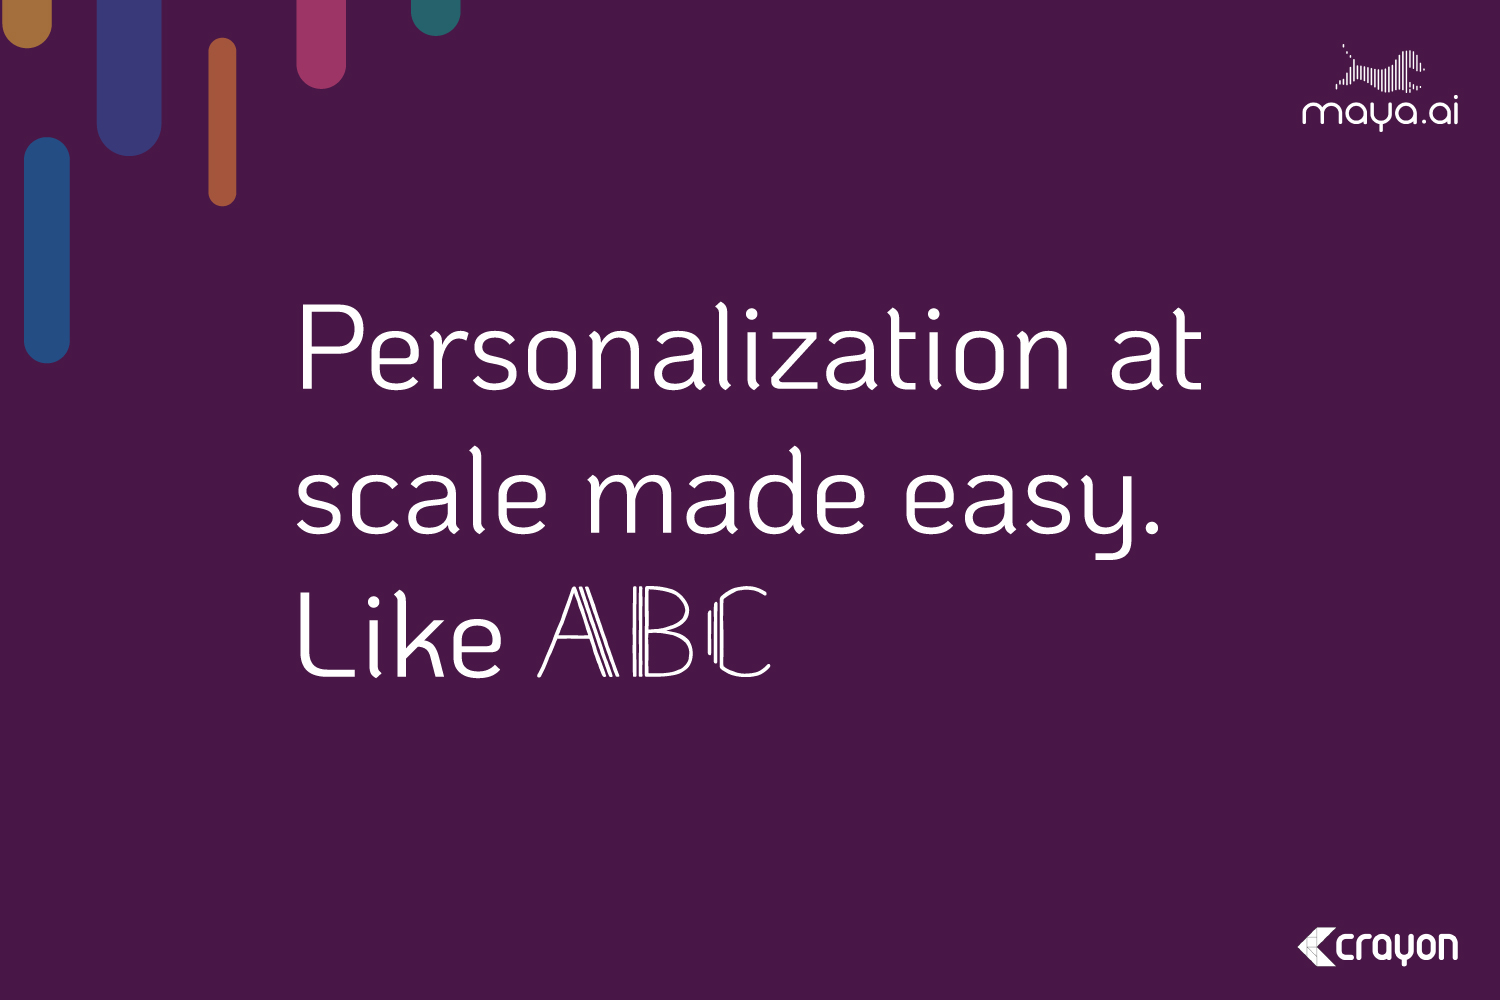 Personalization at scale made easy. Like ABC